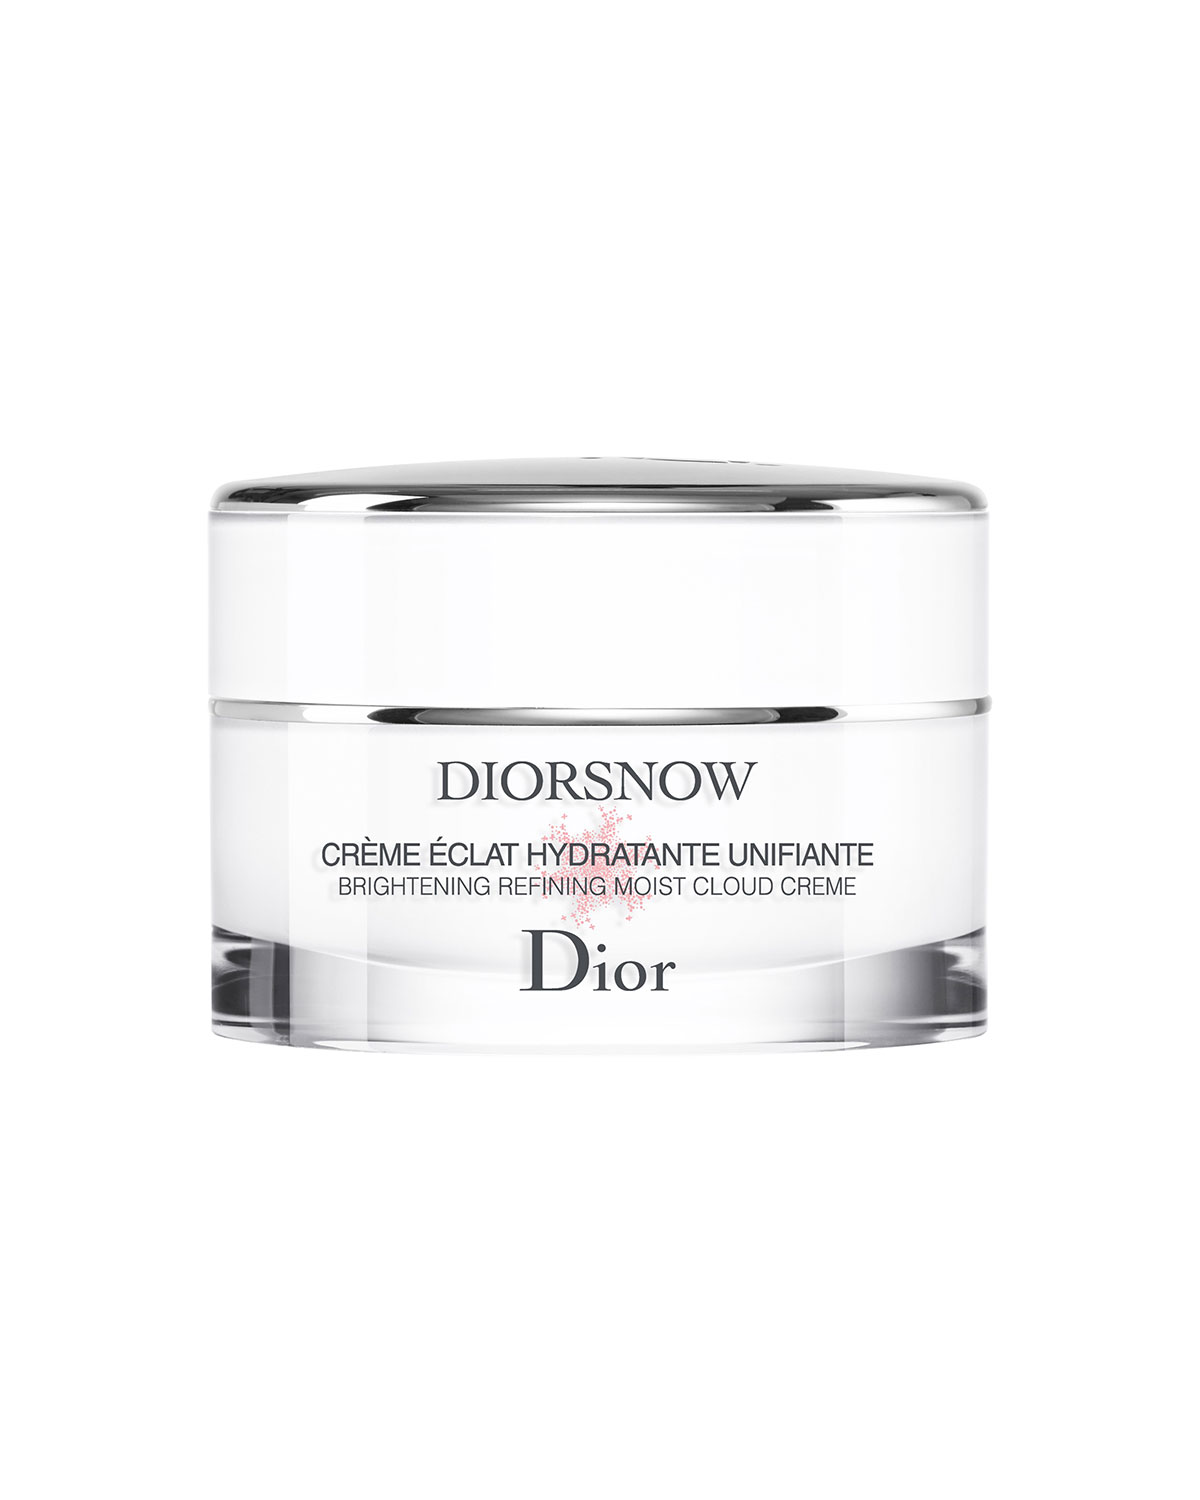 Dior 1.7 oz. DIORSNOW Illuminating Cloud Creme